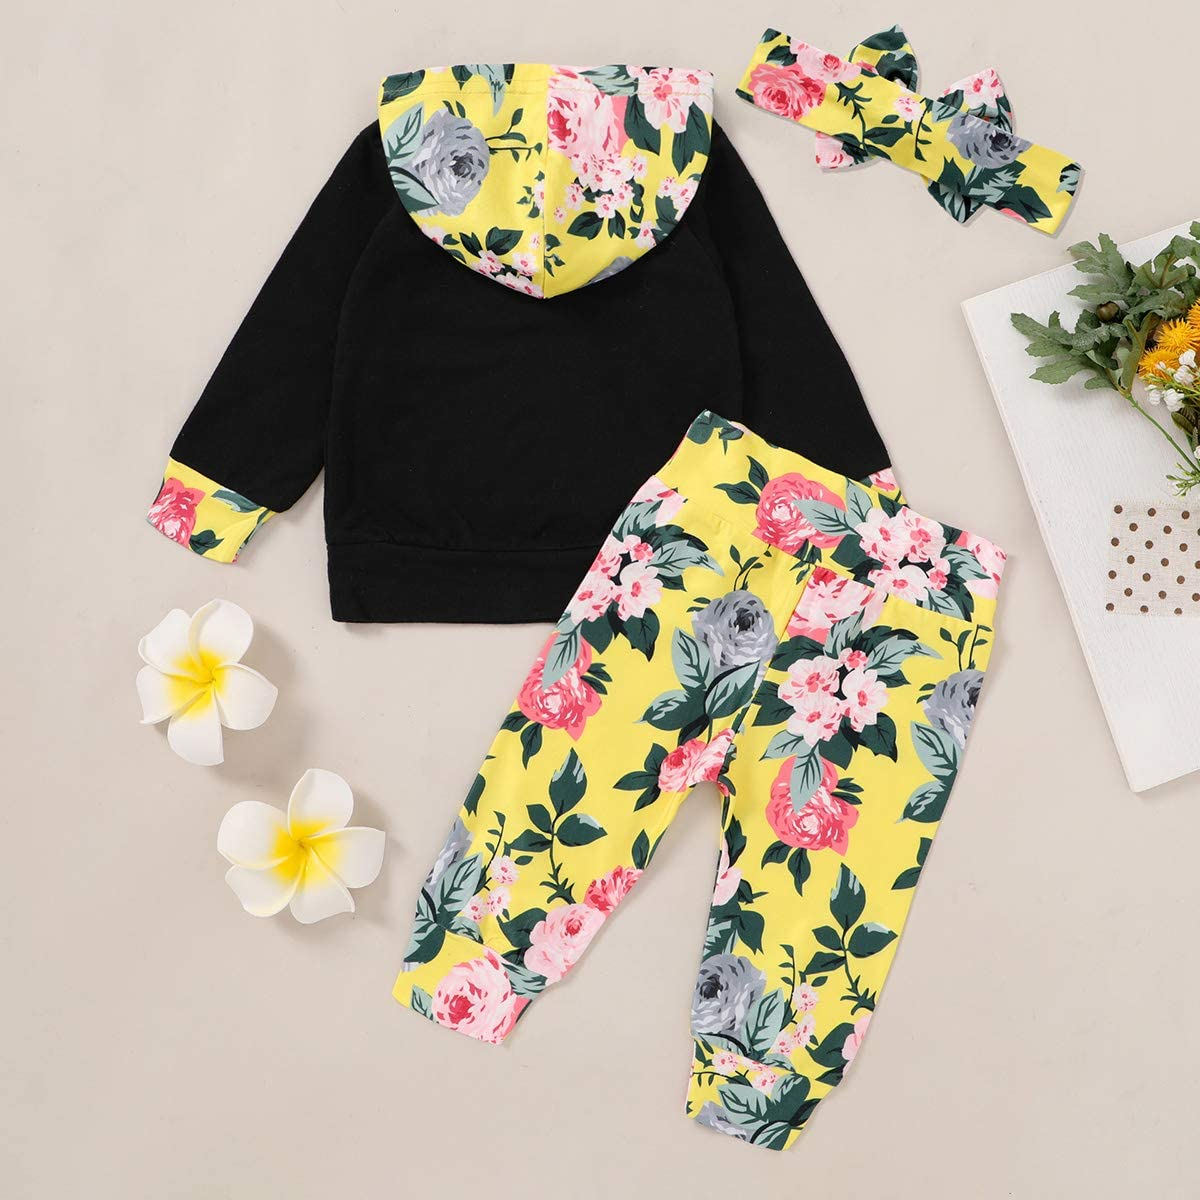 Baby Girls Navy Blue Lightweight Knit Floral Sweatsuit Clothing Set Navy with Flowers